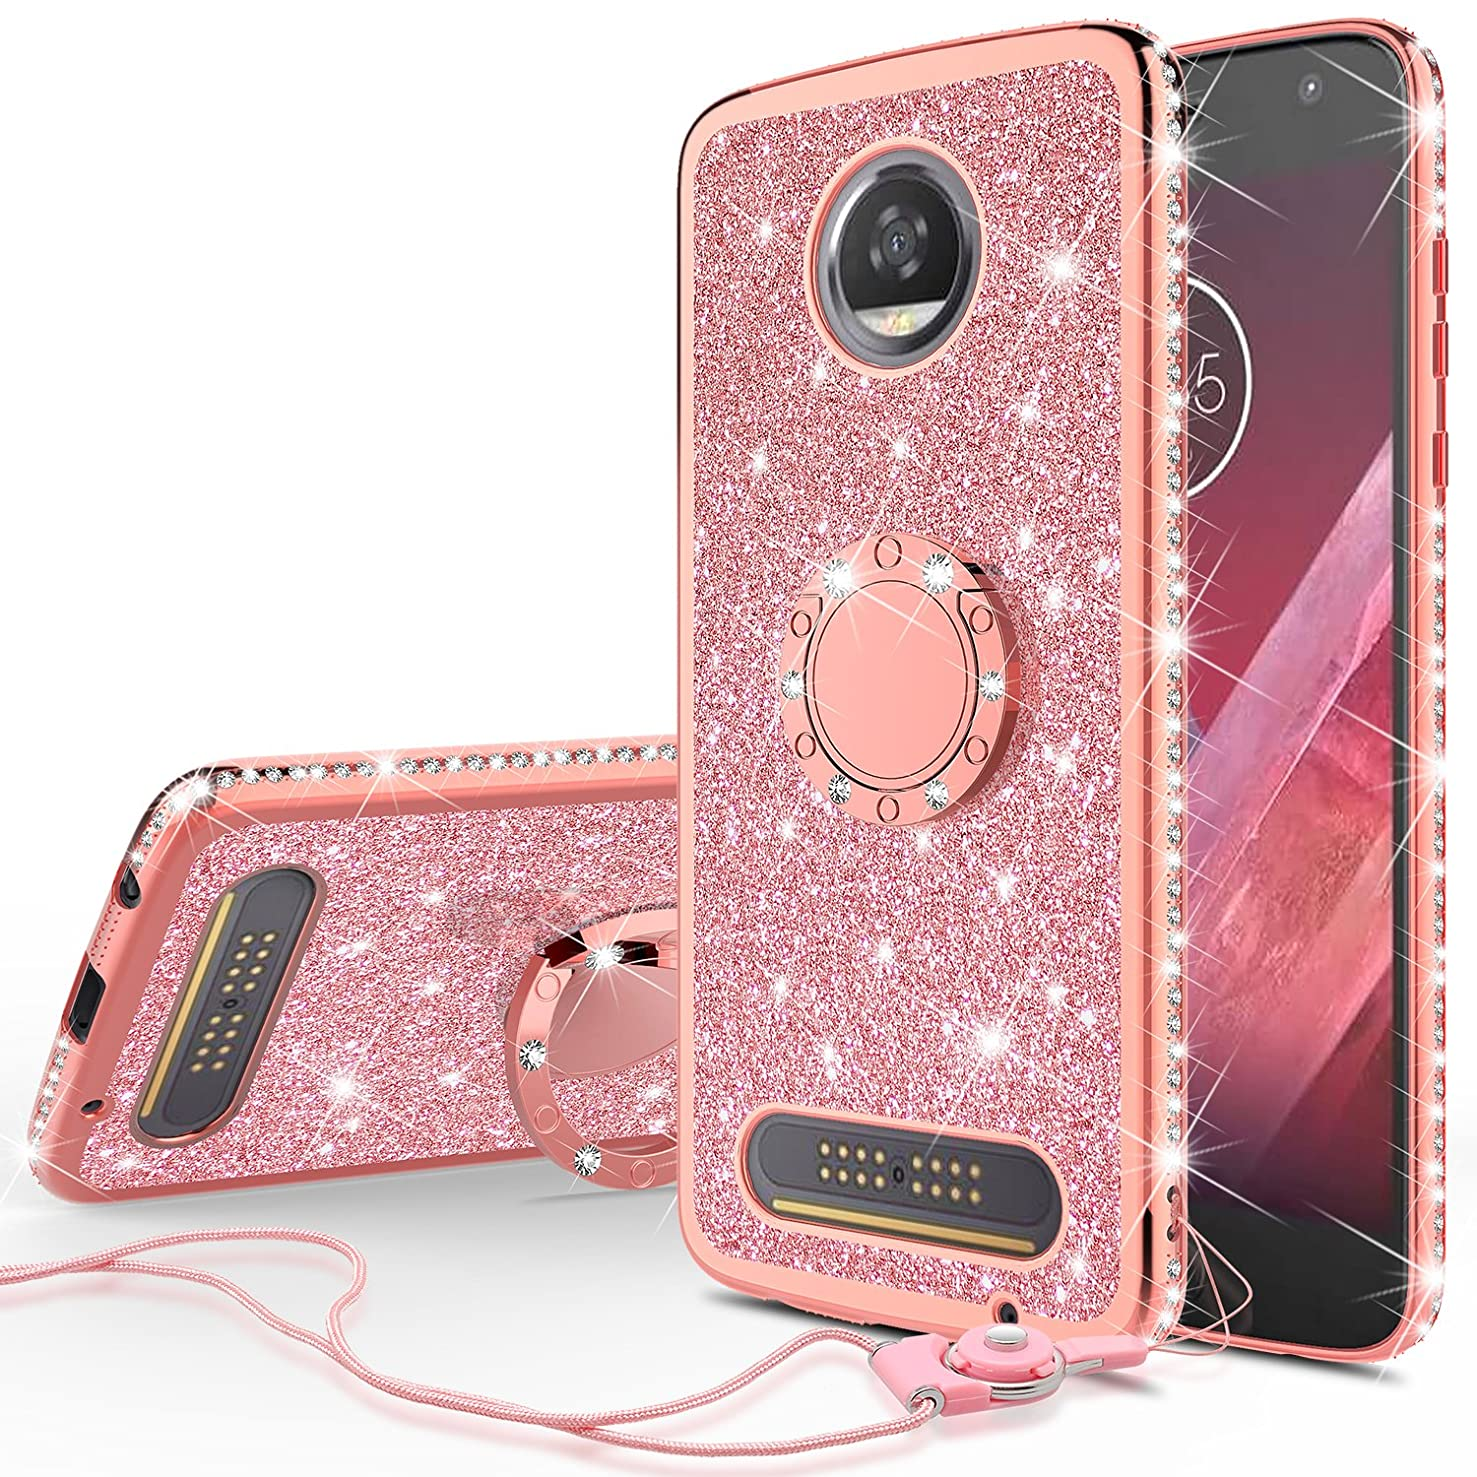 [GW USA] Glitter Cute Phone Case with Kickstand Compatible for Moto Z2 Play Case, Bling Diamond Rhinestone Bumper Ring Stand Sparkly Clear Thin Soft Protective for Girls Women - Rose Gold (Rose Gold)